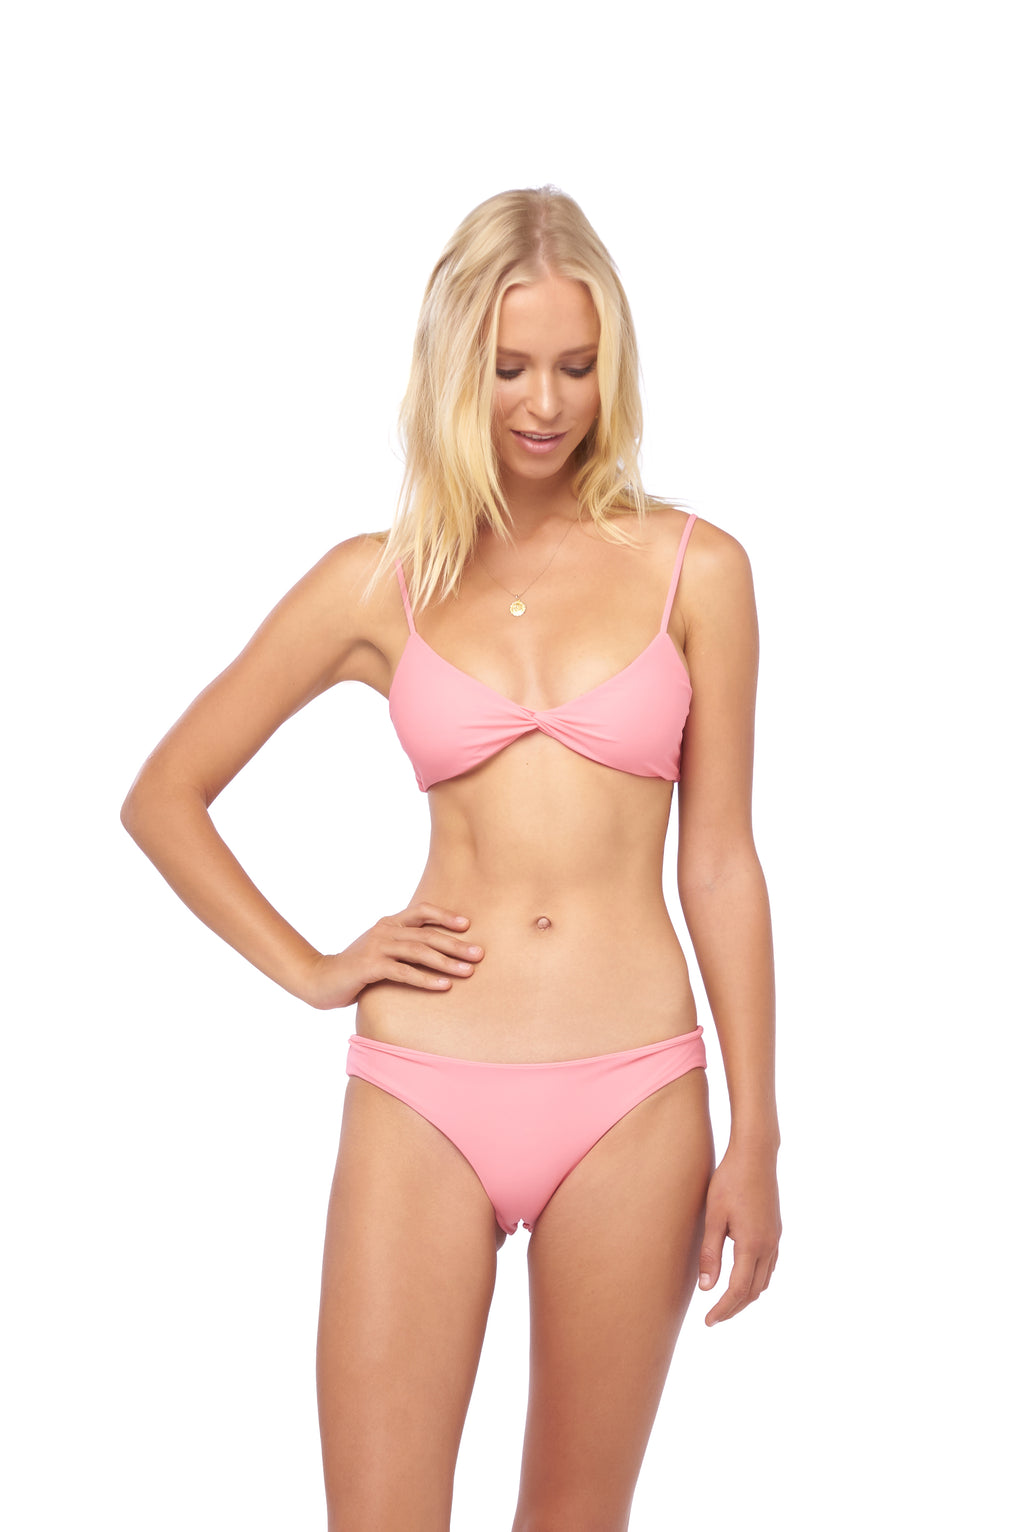 Storm Swimwear - Bora Bora - Twist front padded top in Cotton Candy